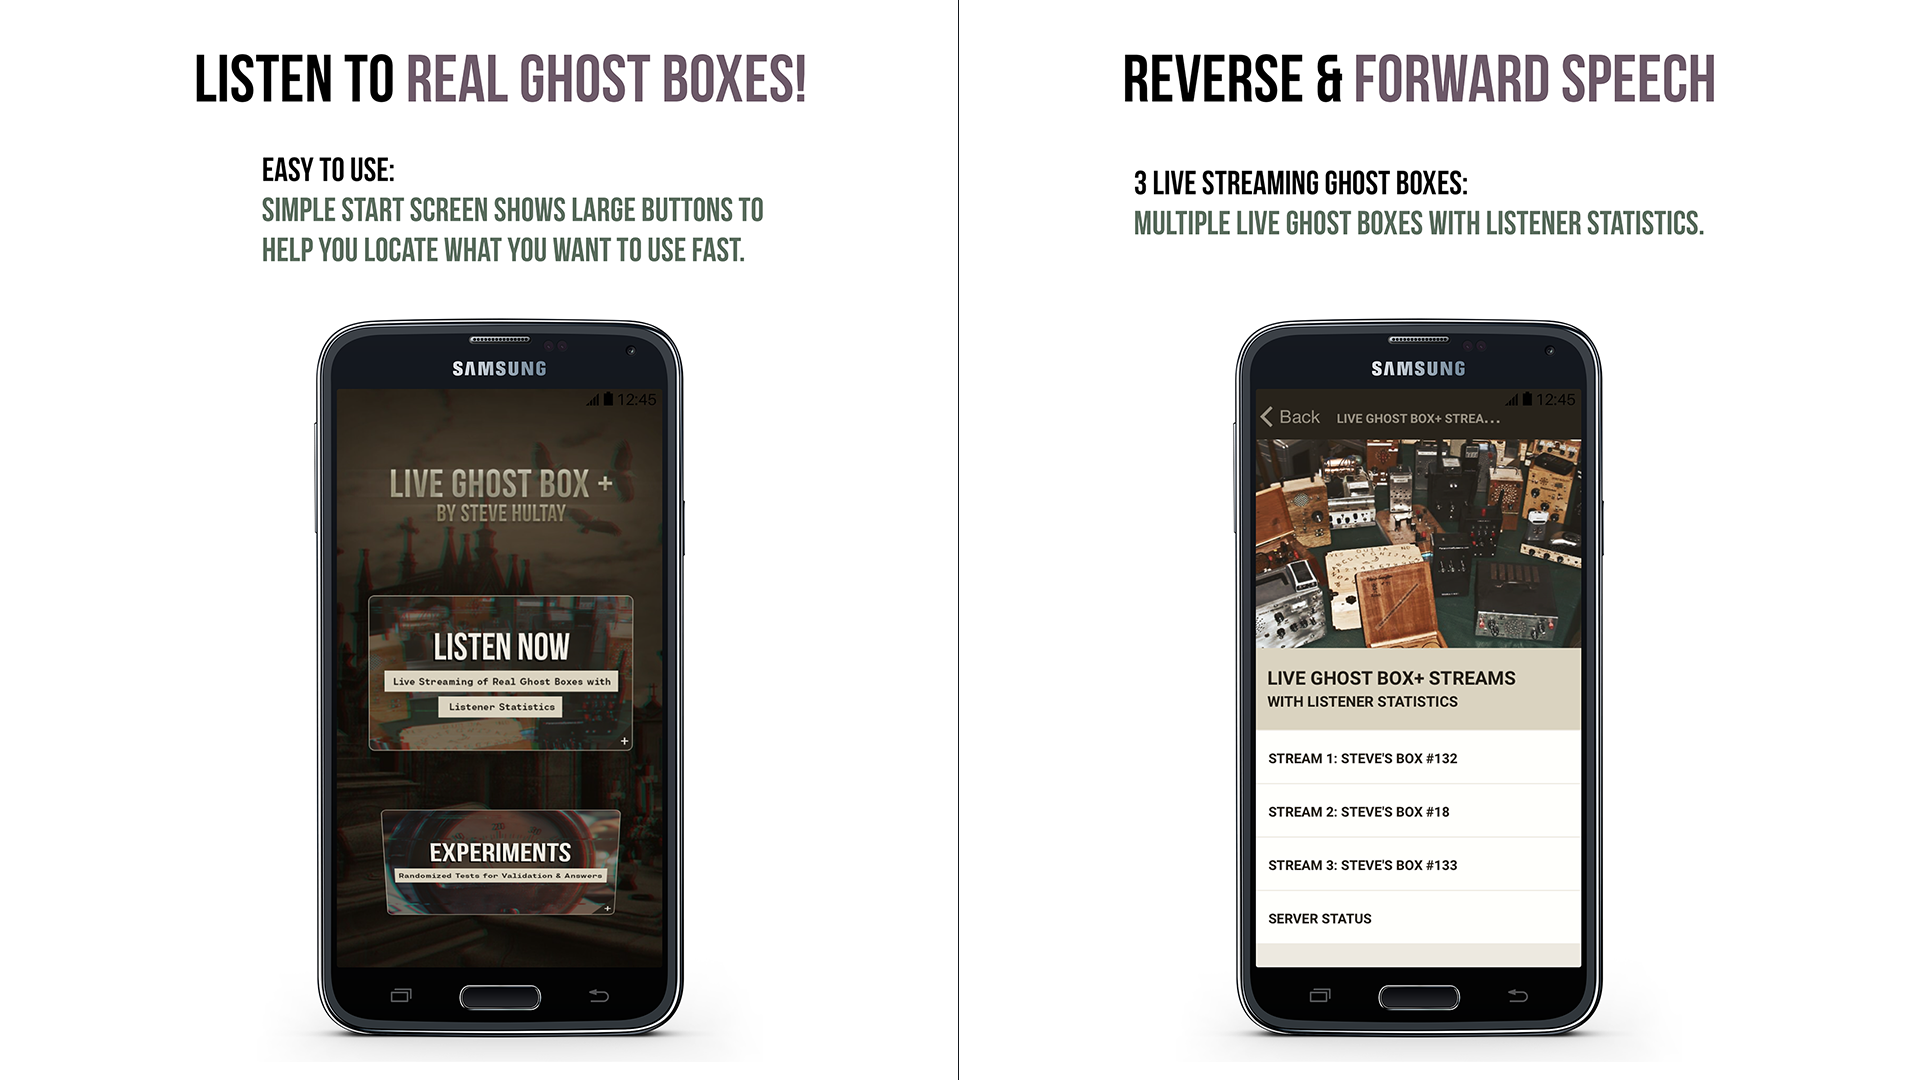 Live ghost box | Paranormal Live Ghost Box for Android  2019-05-08